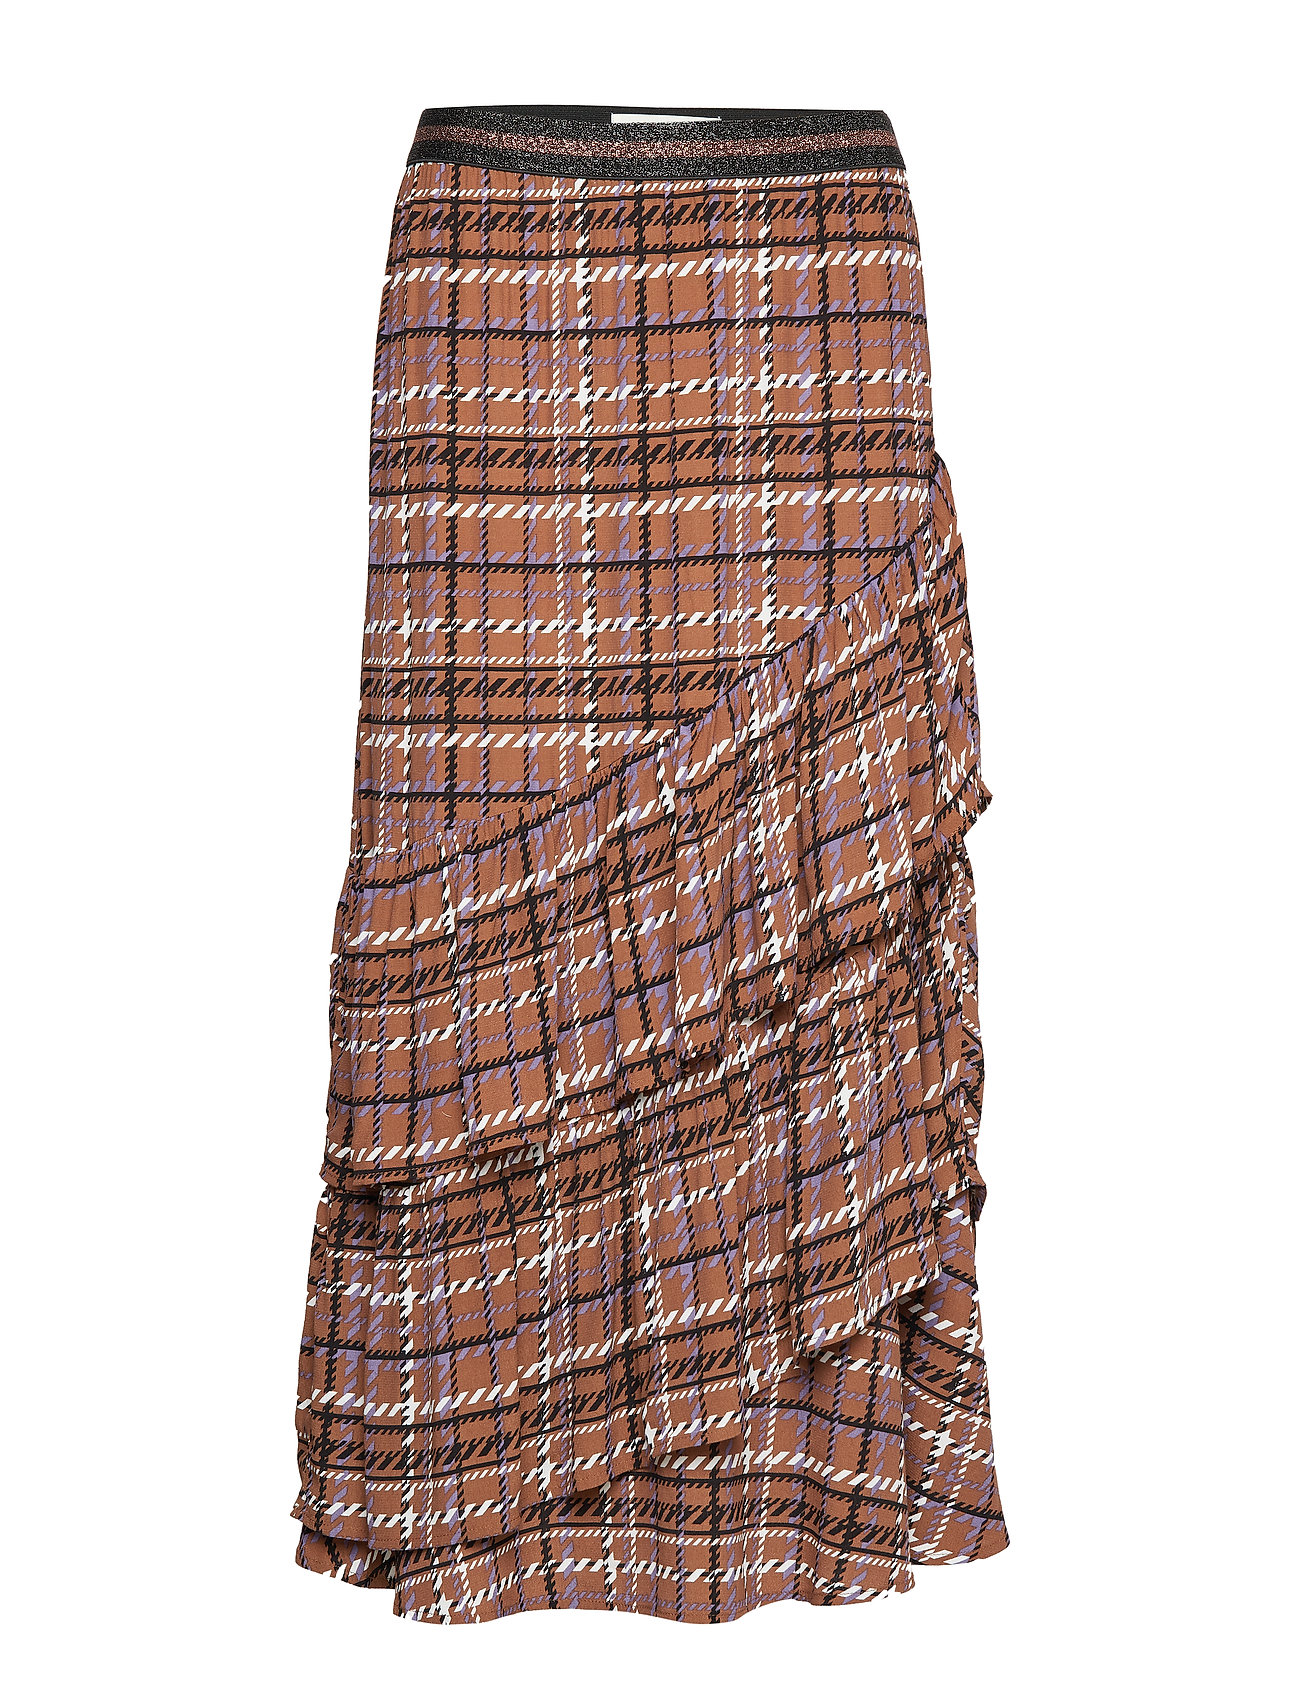 Sofie Schnoor Skirt - BROWN